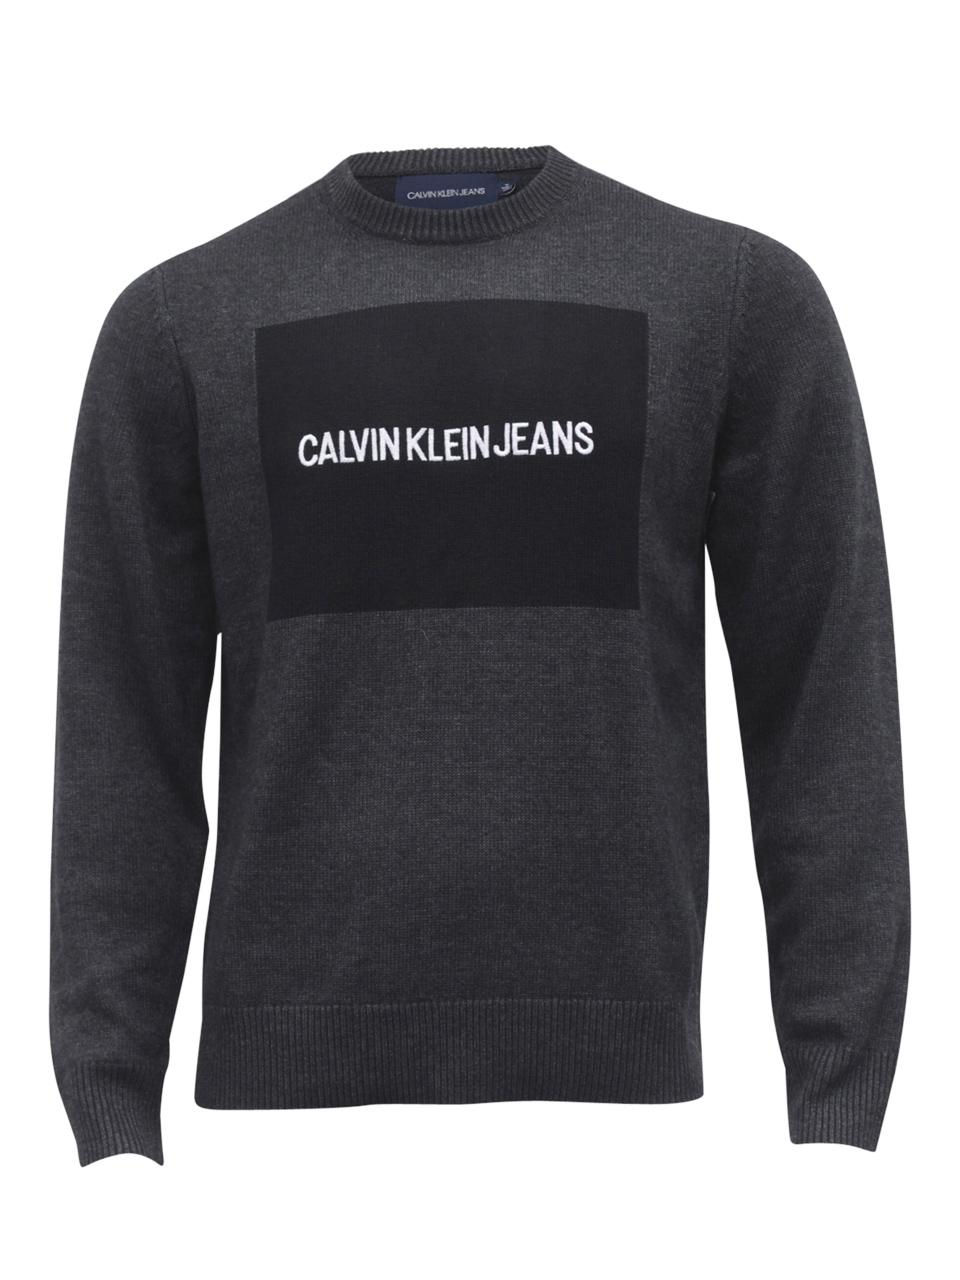 Image of - Dark Charcoal Heather - Small